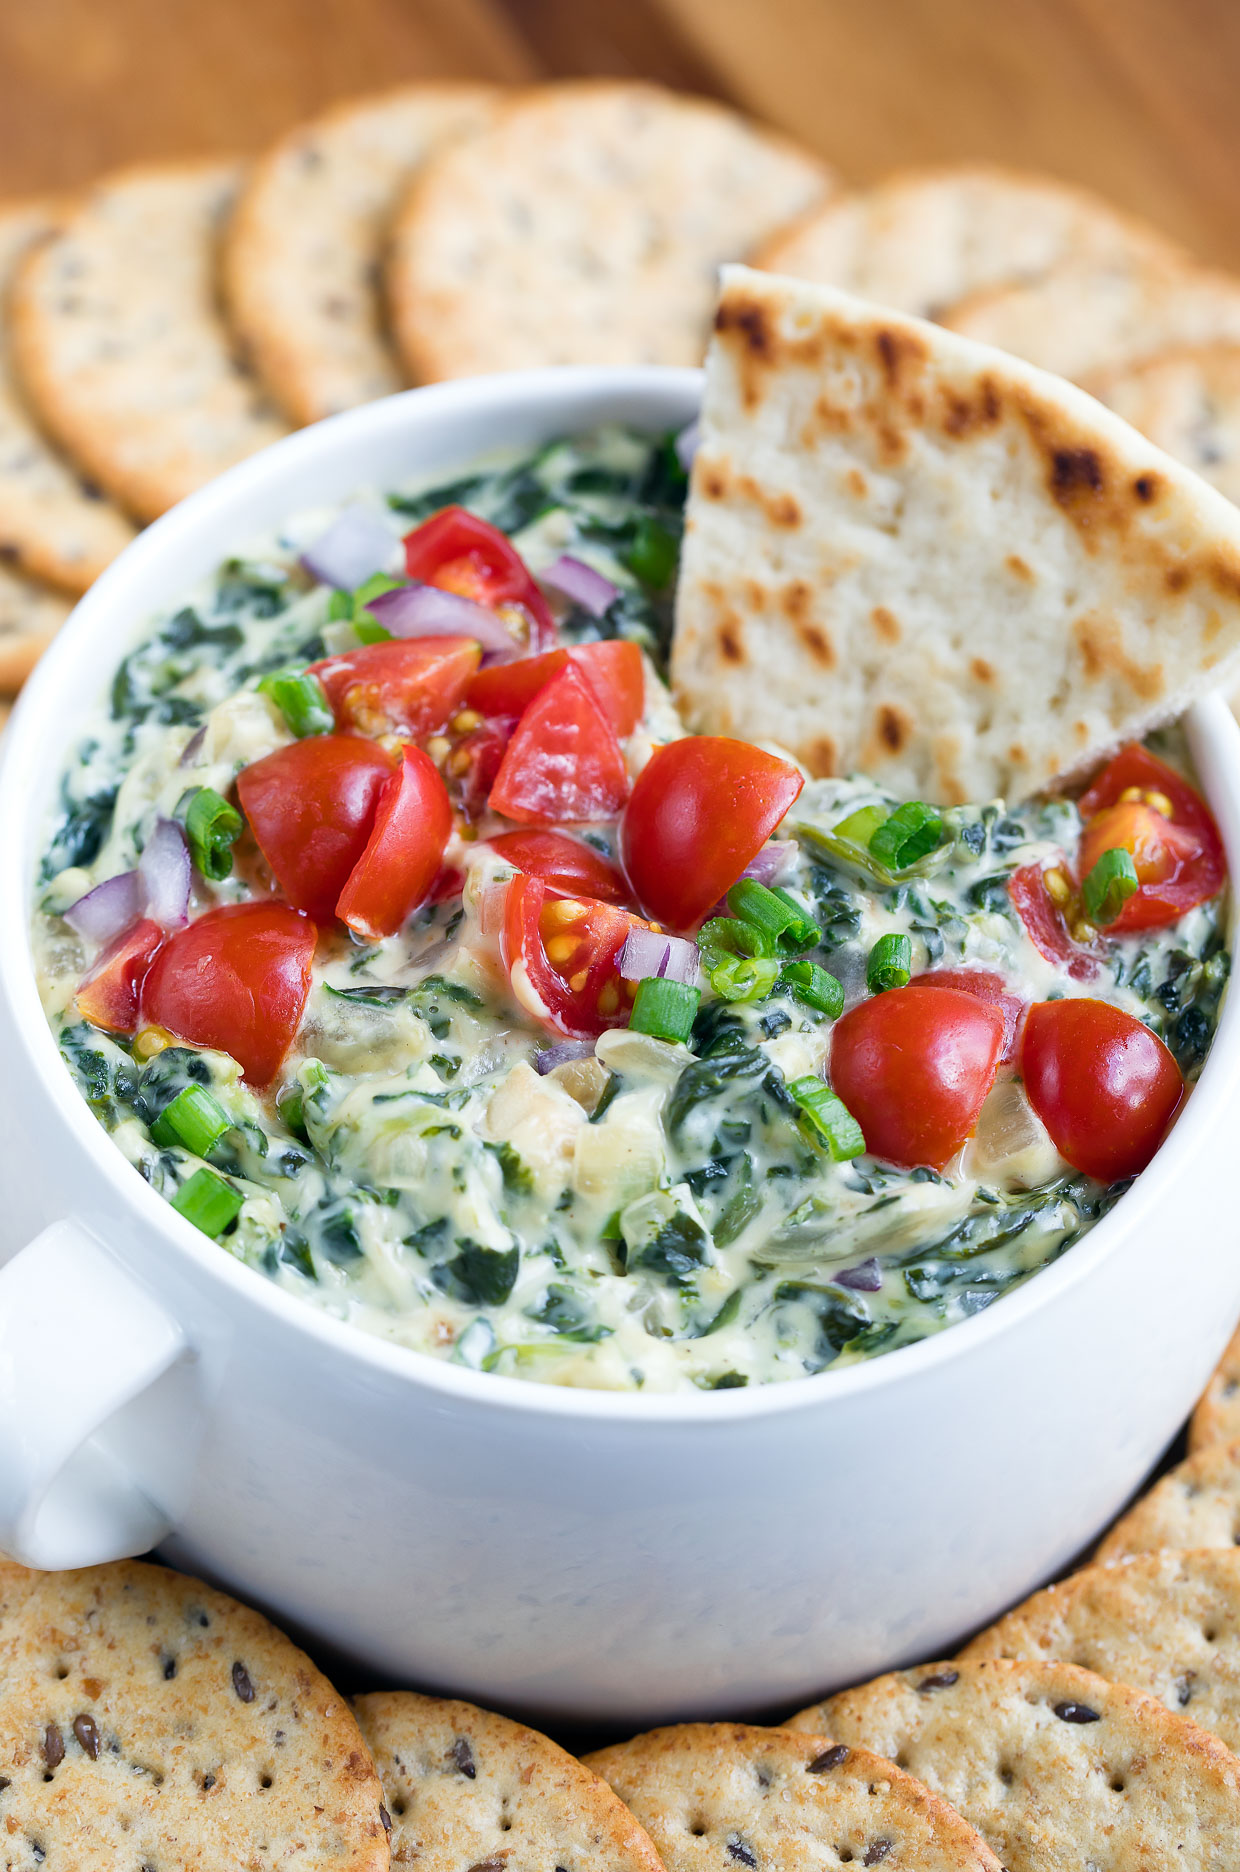 This healthy hot spinach artichoke dip is going to rock your world! Dive in with a few toasty chips and a pile of crunchy veggies and be prepared to hover over the bowl until it's gone!